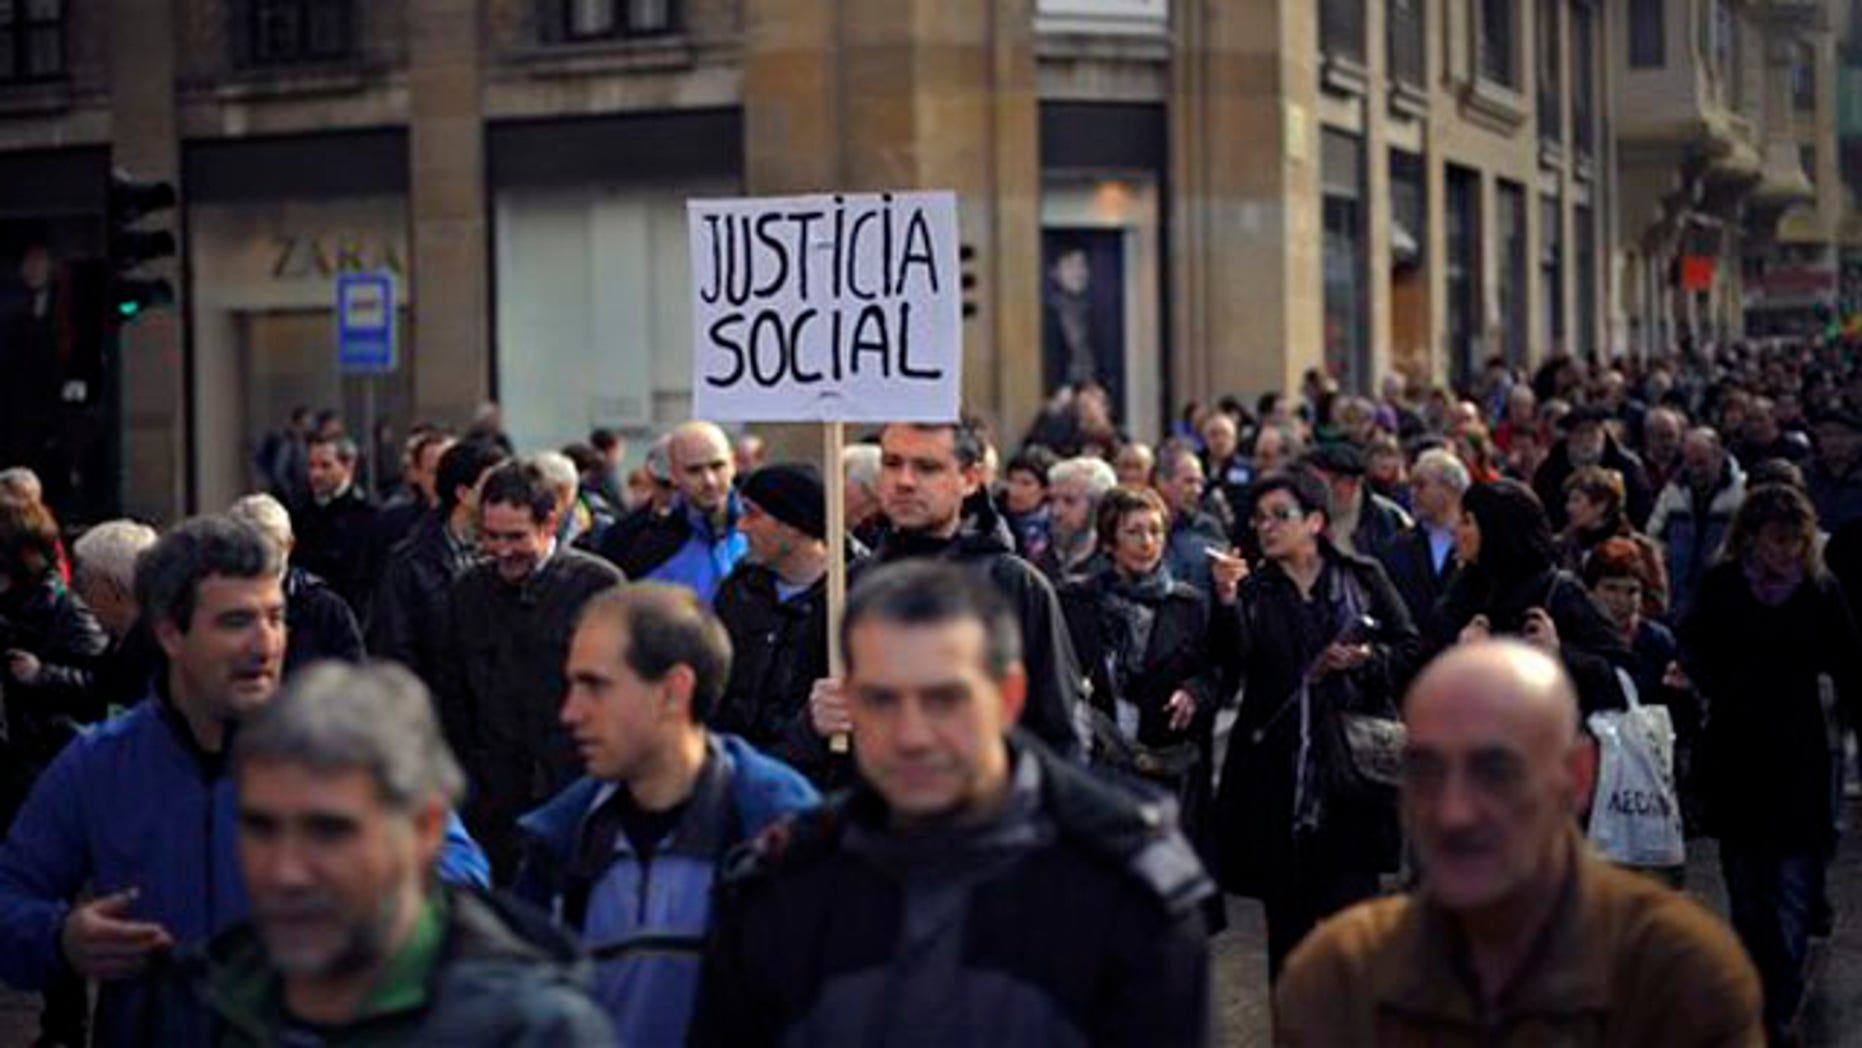 Jan. 21, 2012: A man holds a poster claiming Social Justice during a march to protest against the cuts planned by the conservative Popular Party of Spanish Prime Minister Mariano Rajoy, in Pamplona, northern Spain. The country suffers a strong economic crisis with more than five million unemployed.